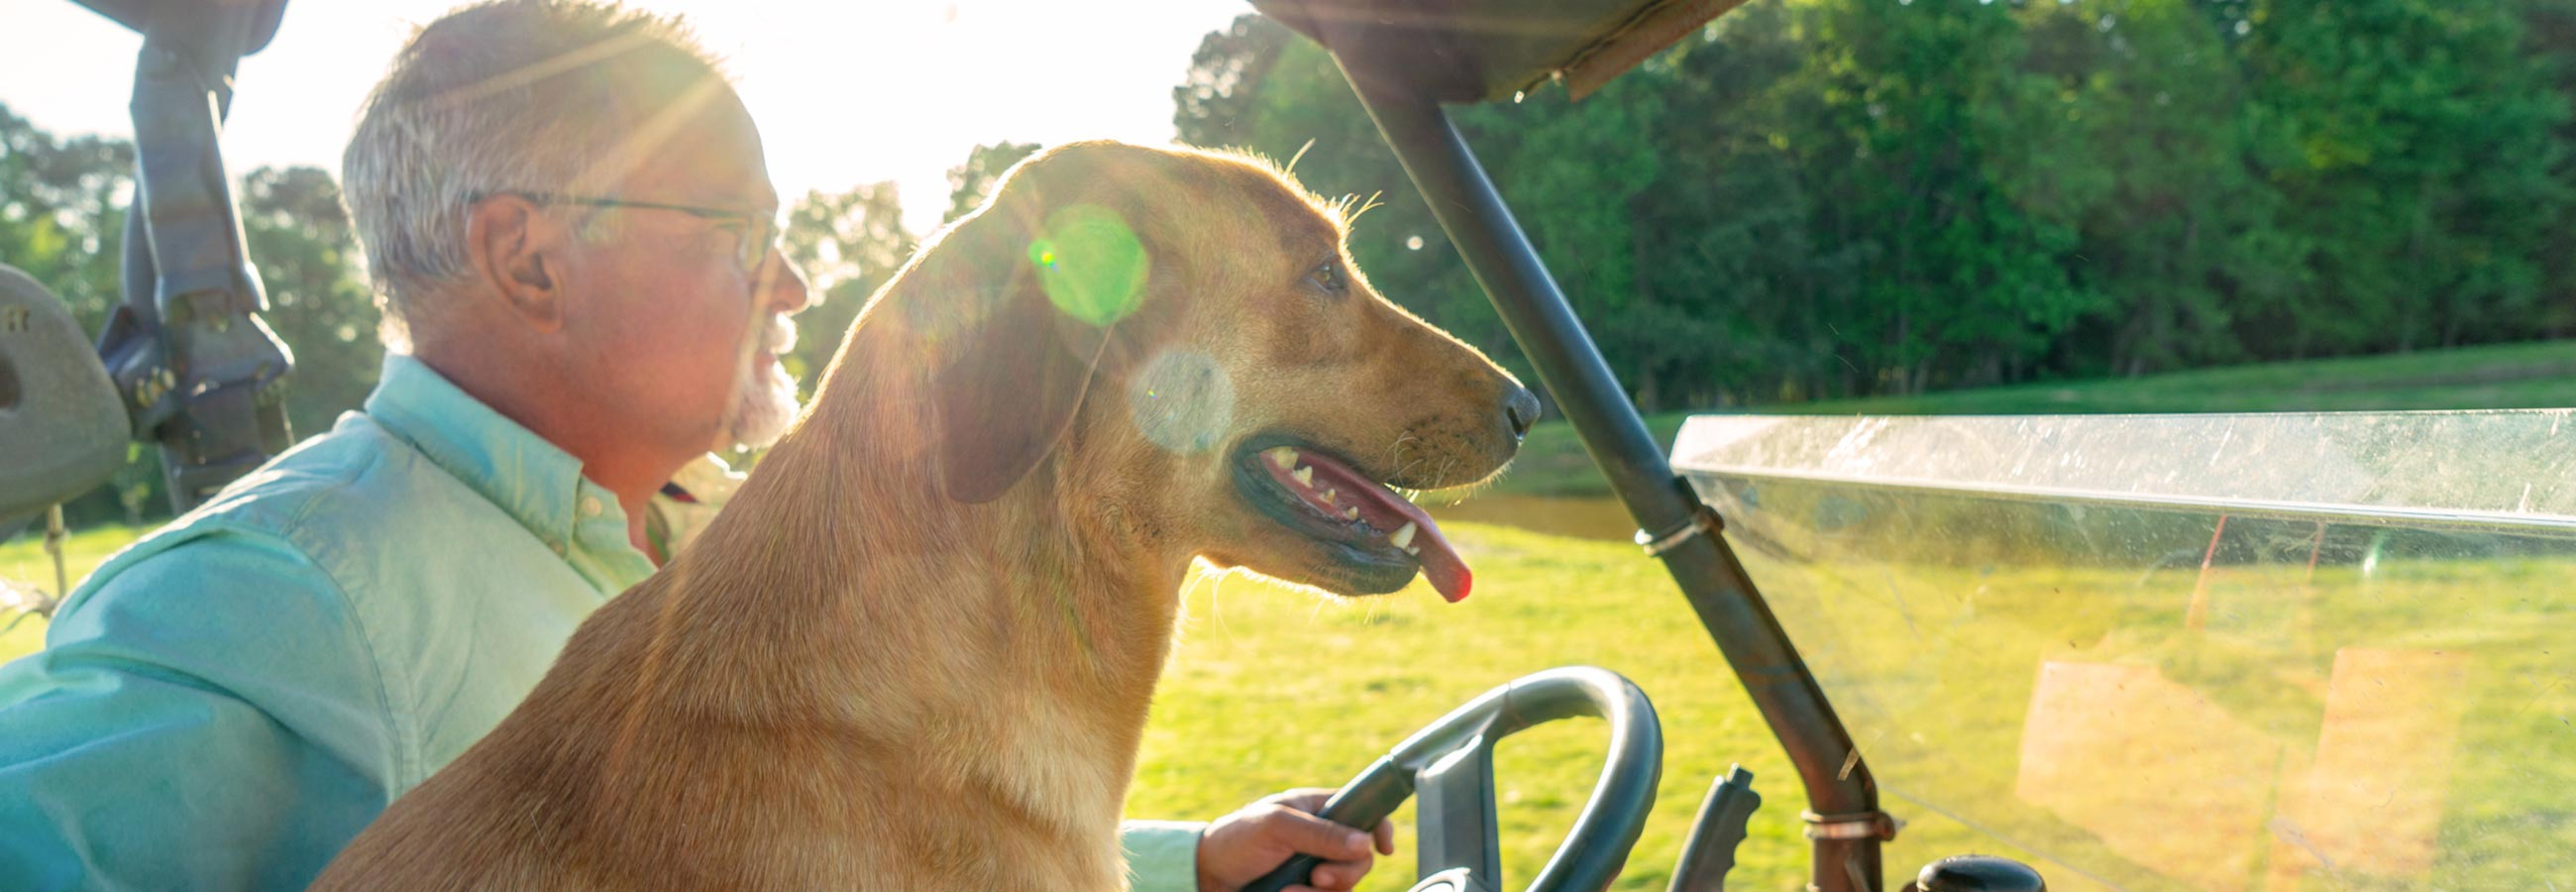 Dog trainer Curtis Treadway riding in golf cart with lab